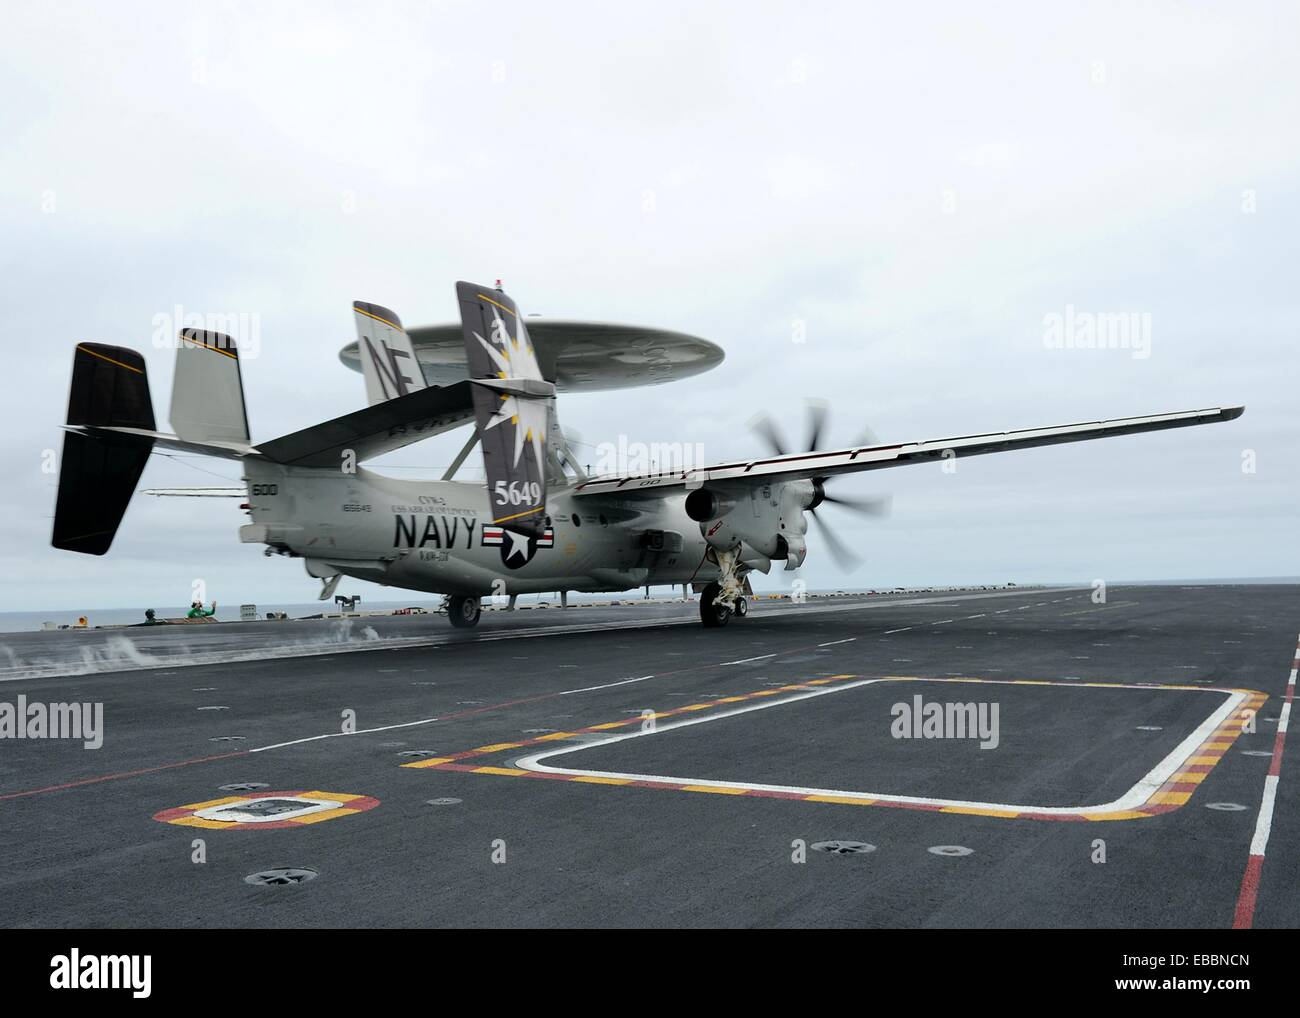 100807-N-2821G-415 PACIFIC OCEAN Aug  7, 2010 An E-2C Hawkeye assigned to the Sun Kings of Airborne Early Warning - Stock Image